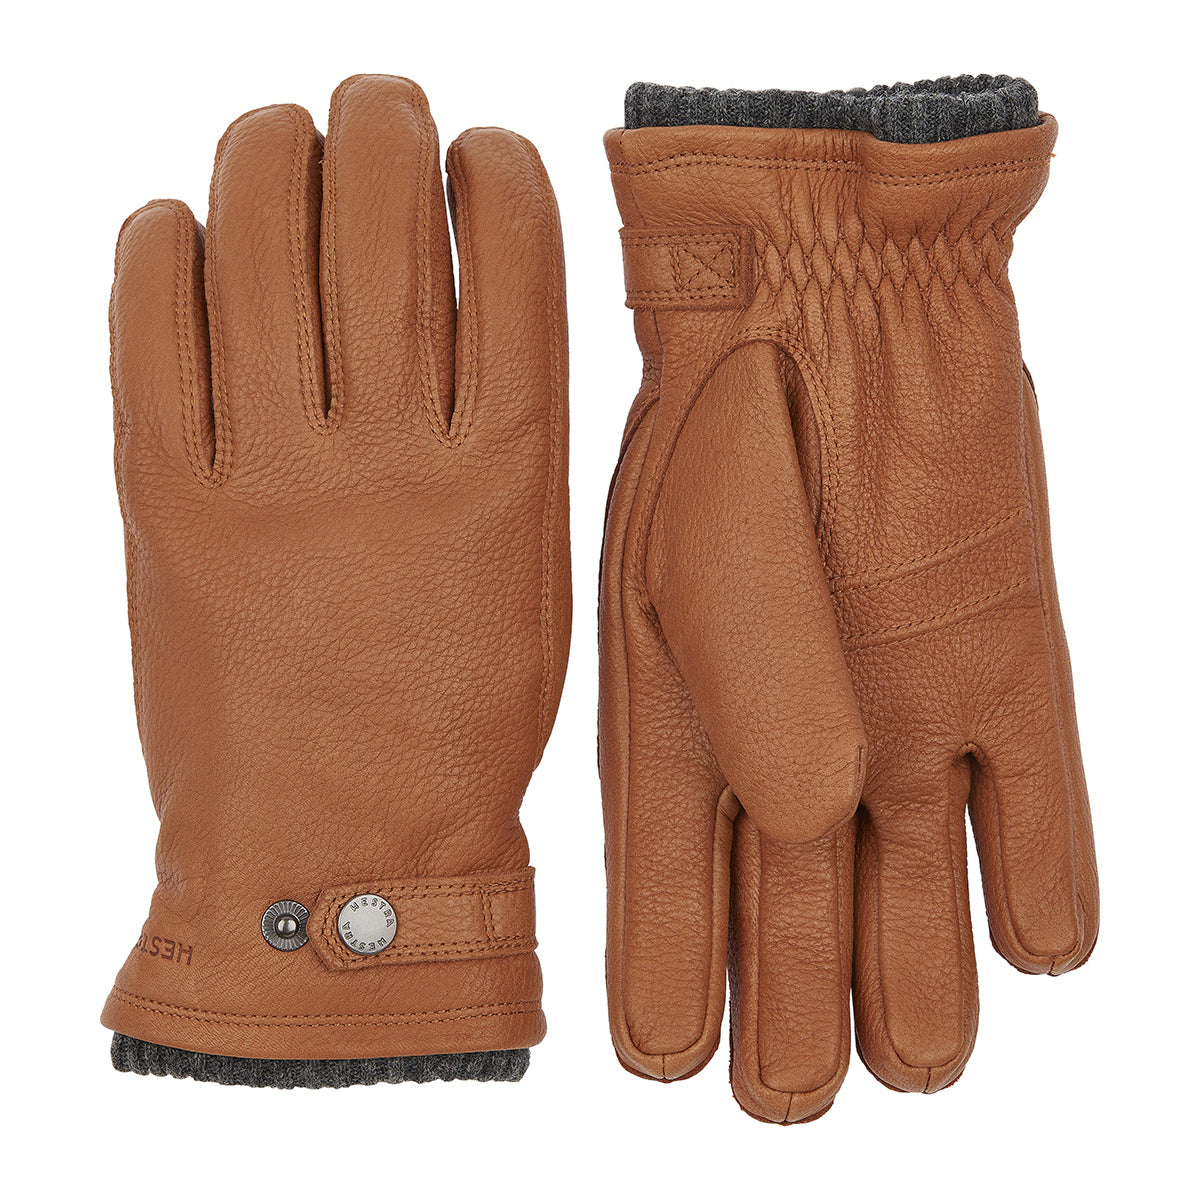 Hestra Utsjo Glove in Cork